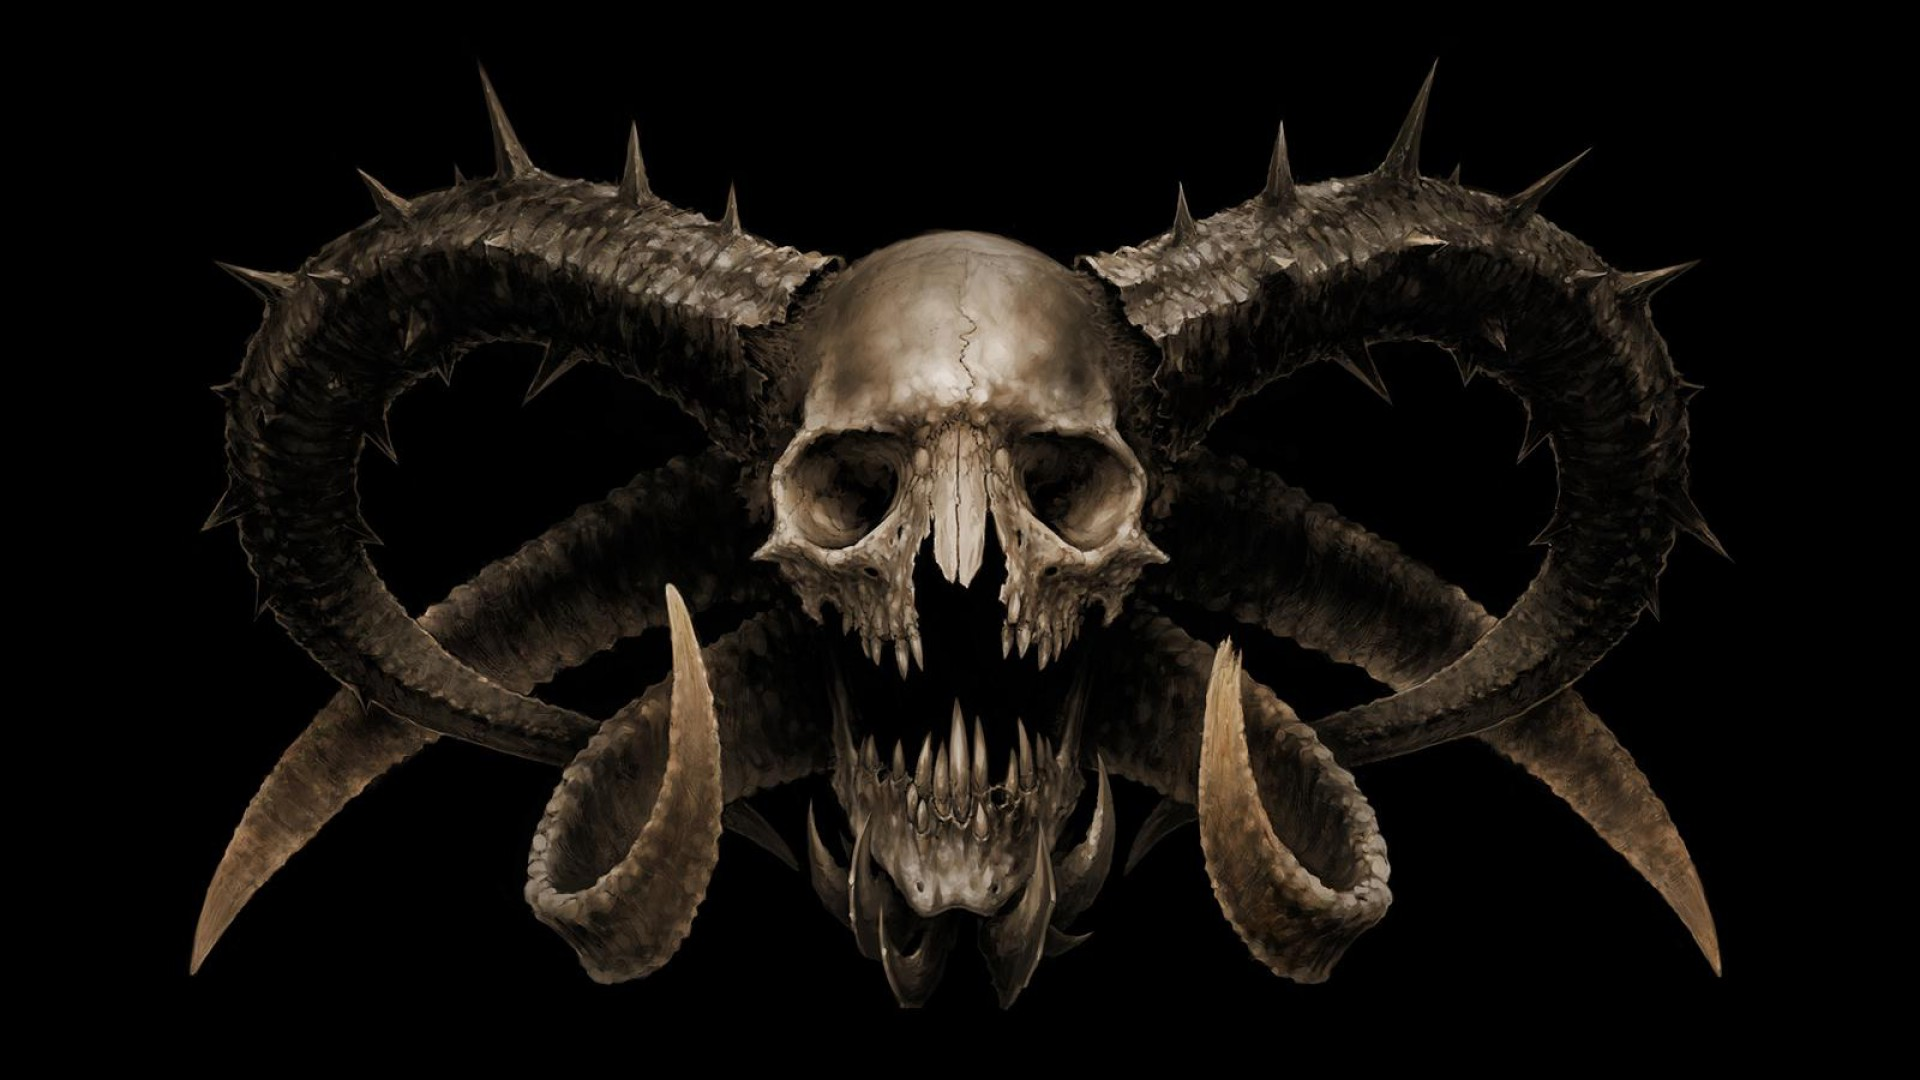 cool rock skull live wallpaper - photo #33